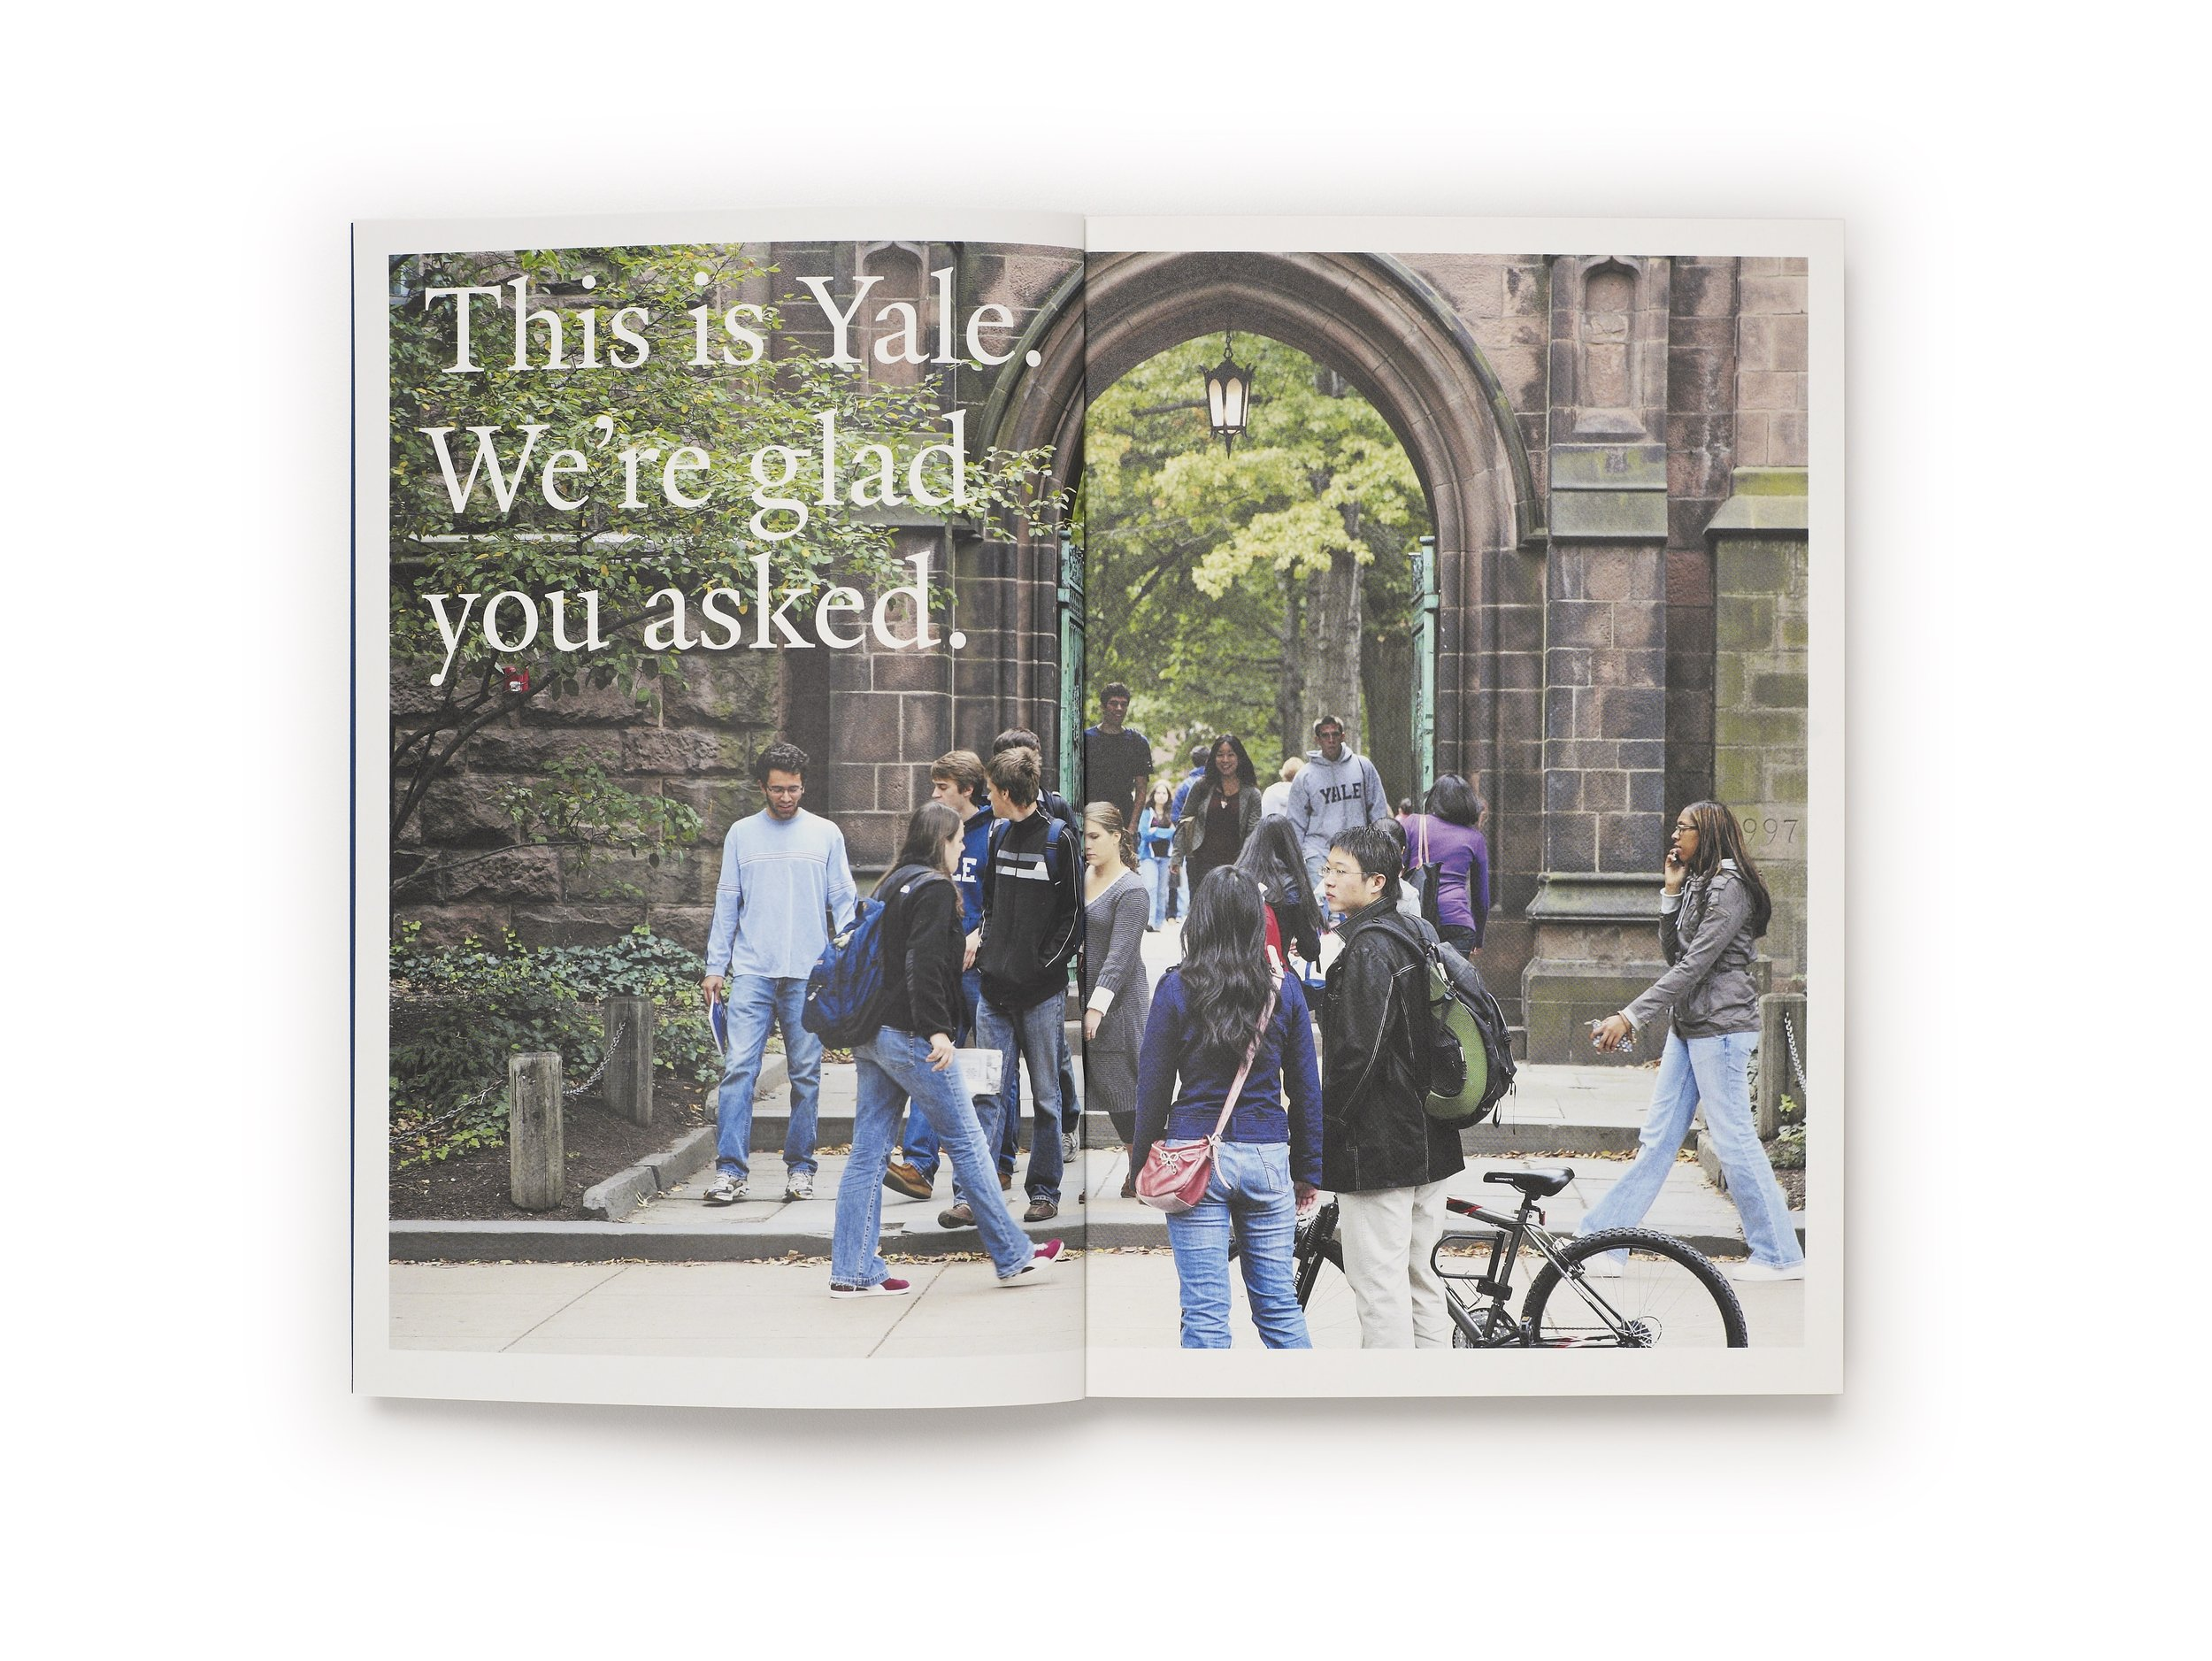 Pentagram_Yale_Viewbook-004643.jpg